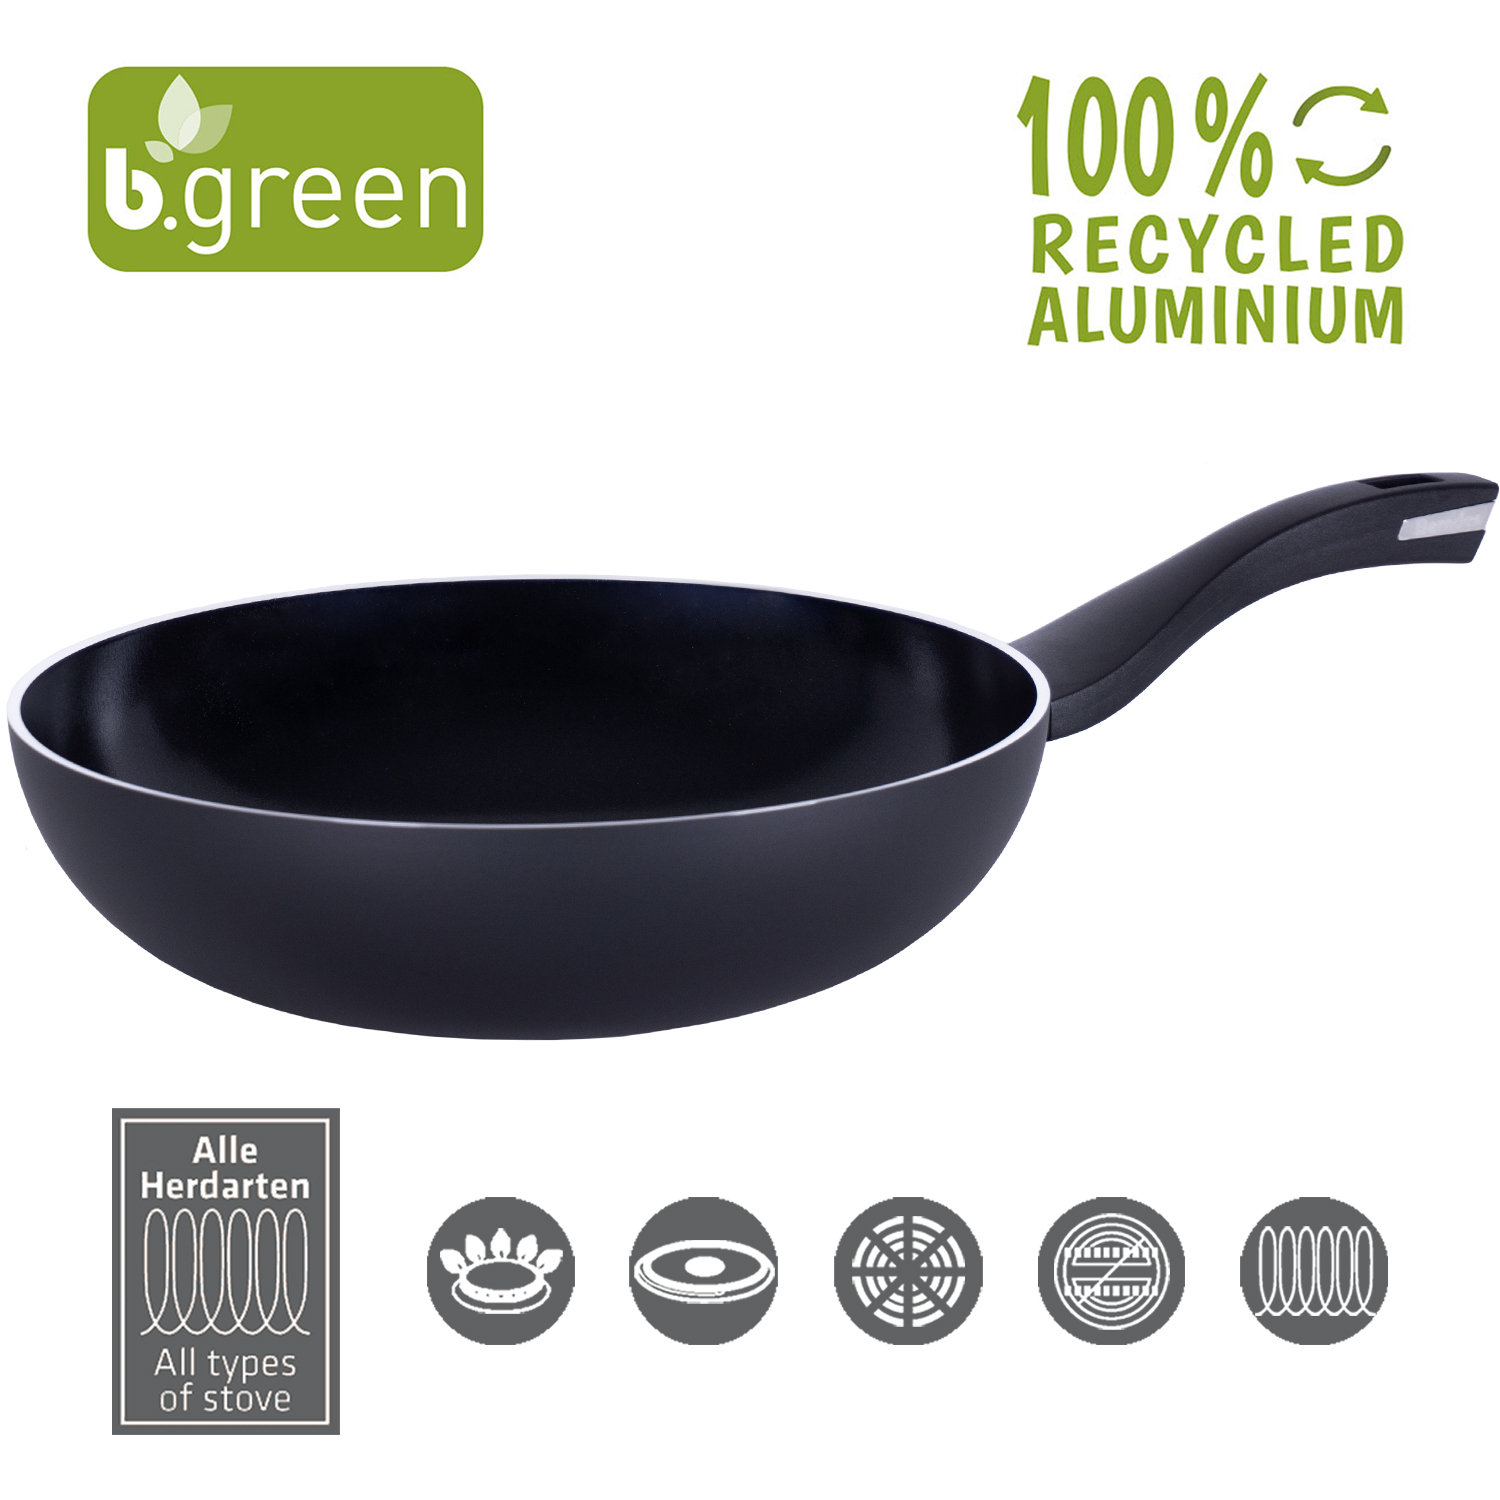 Berndes Wokpfanne b.green Alu Recycled Induction schwarz 28 cm